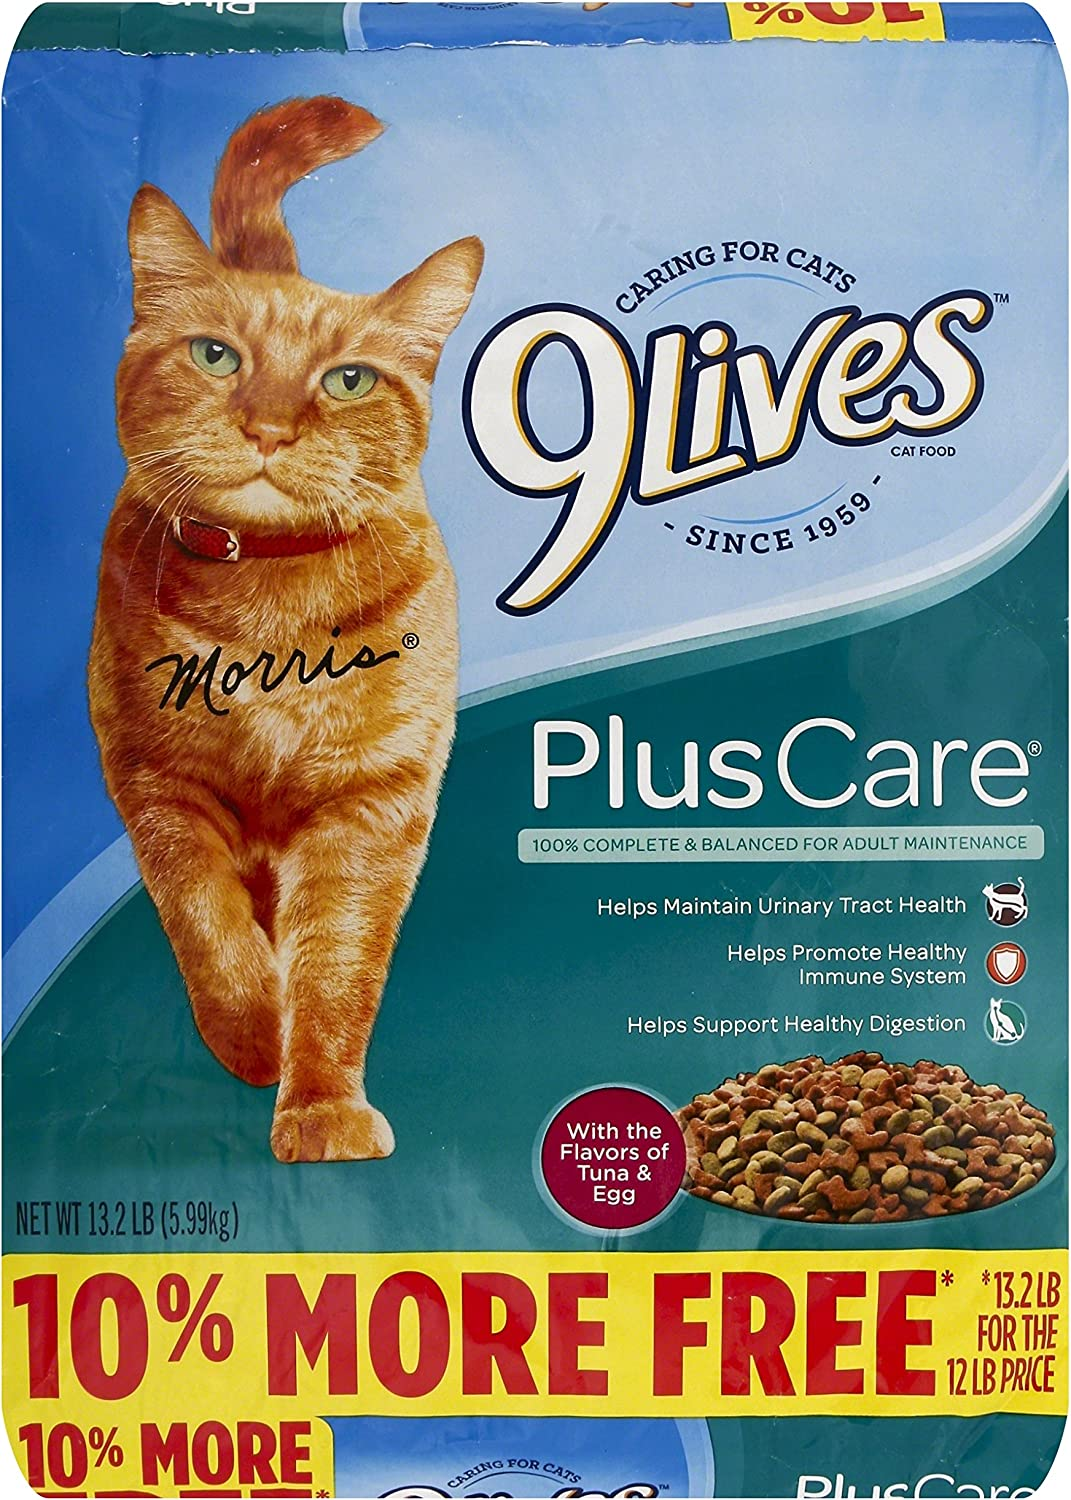 9Lives Plus Care Dry Cat Food, 13.2 lb